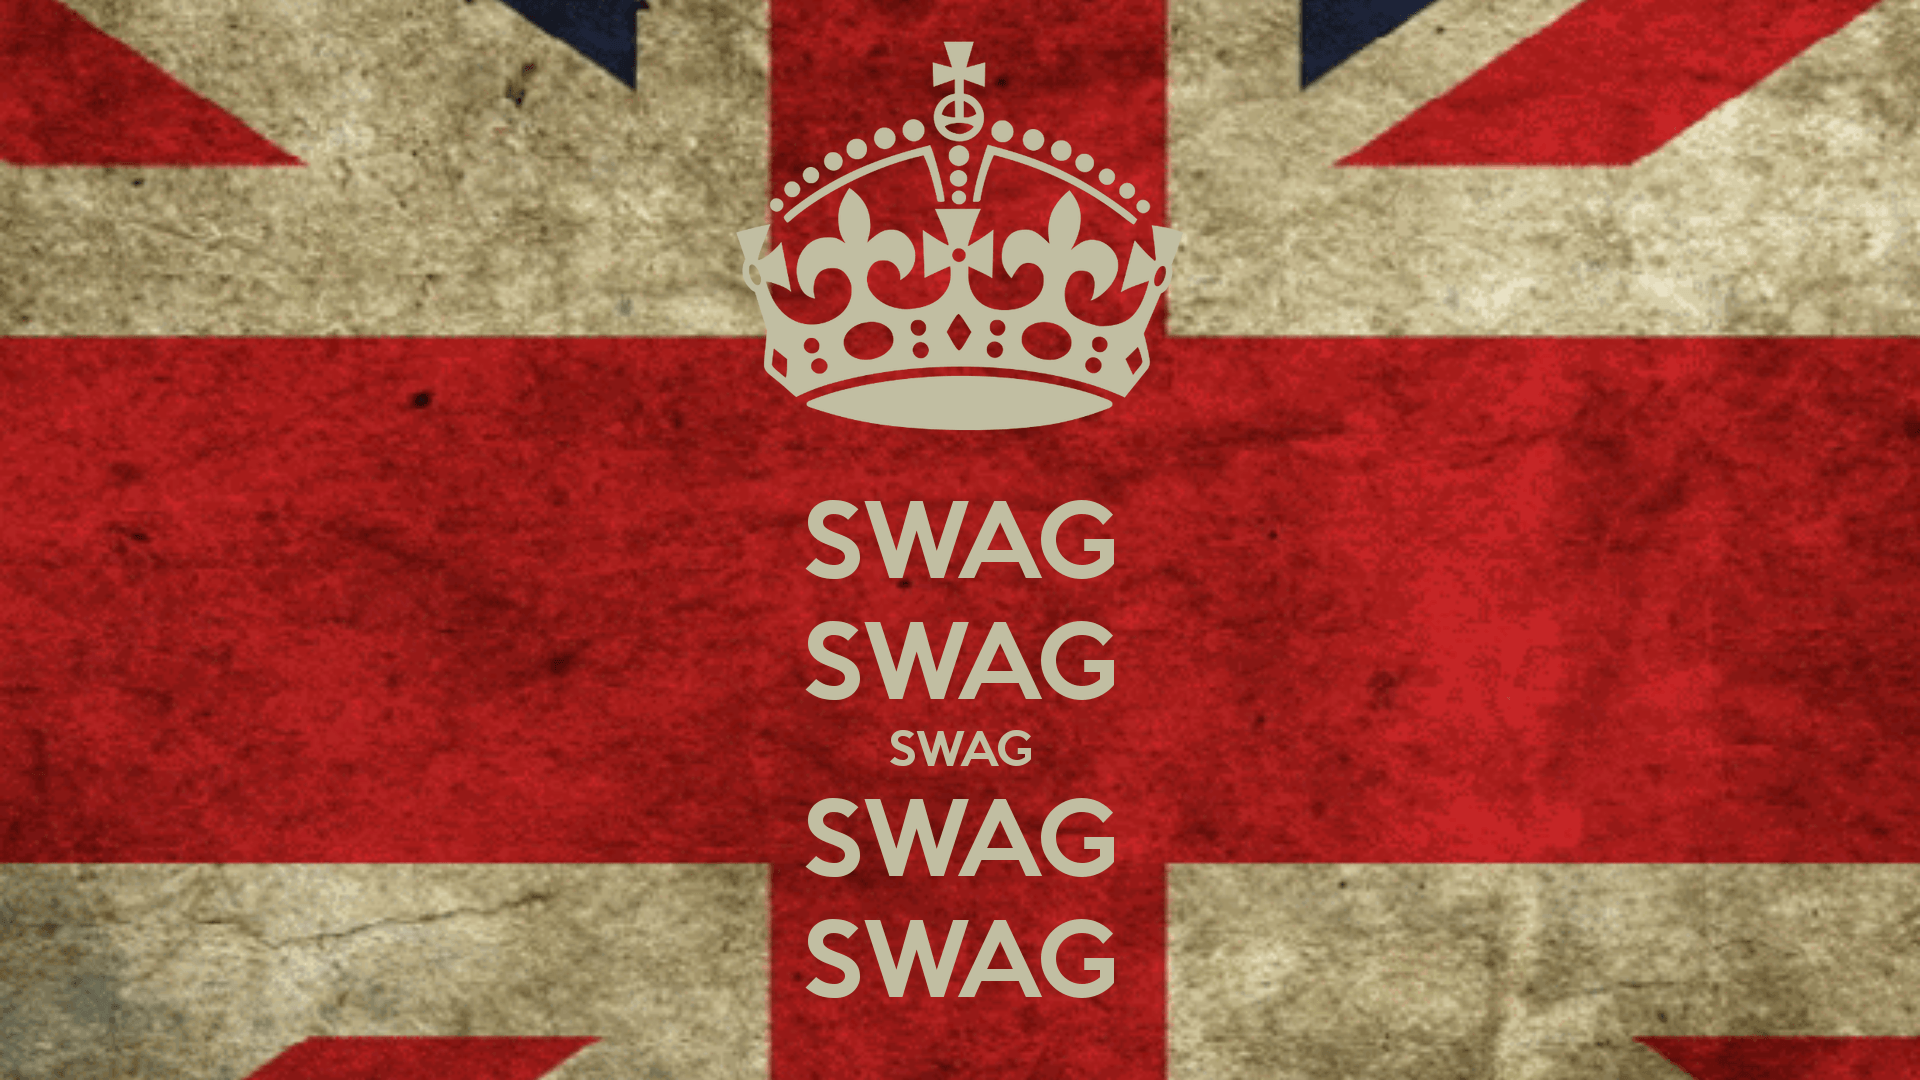 SWAG pictures, photos and SWAG style wallpapers